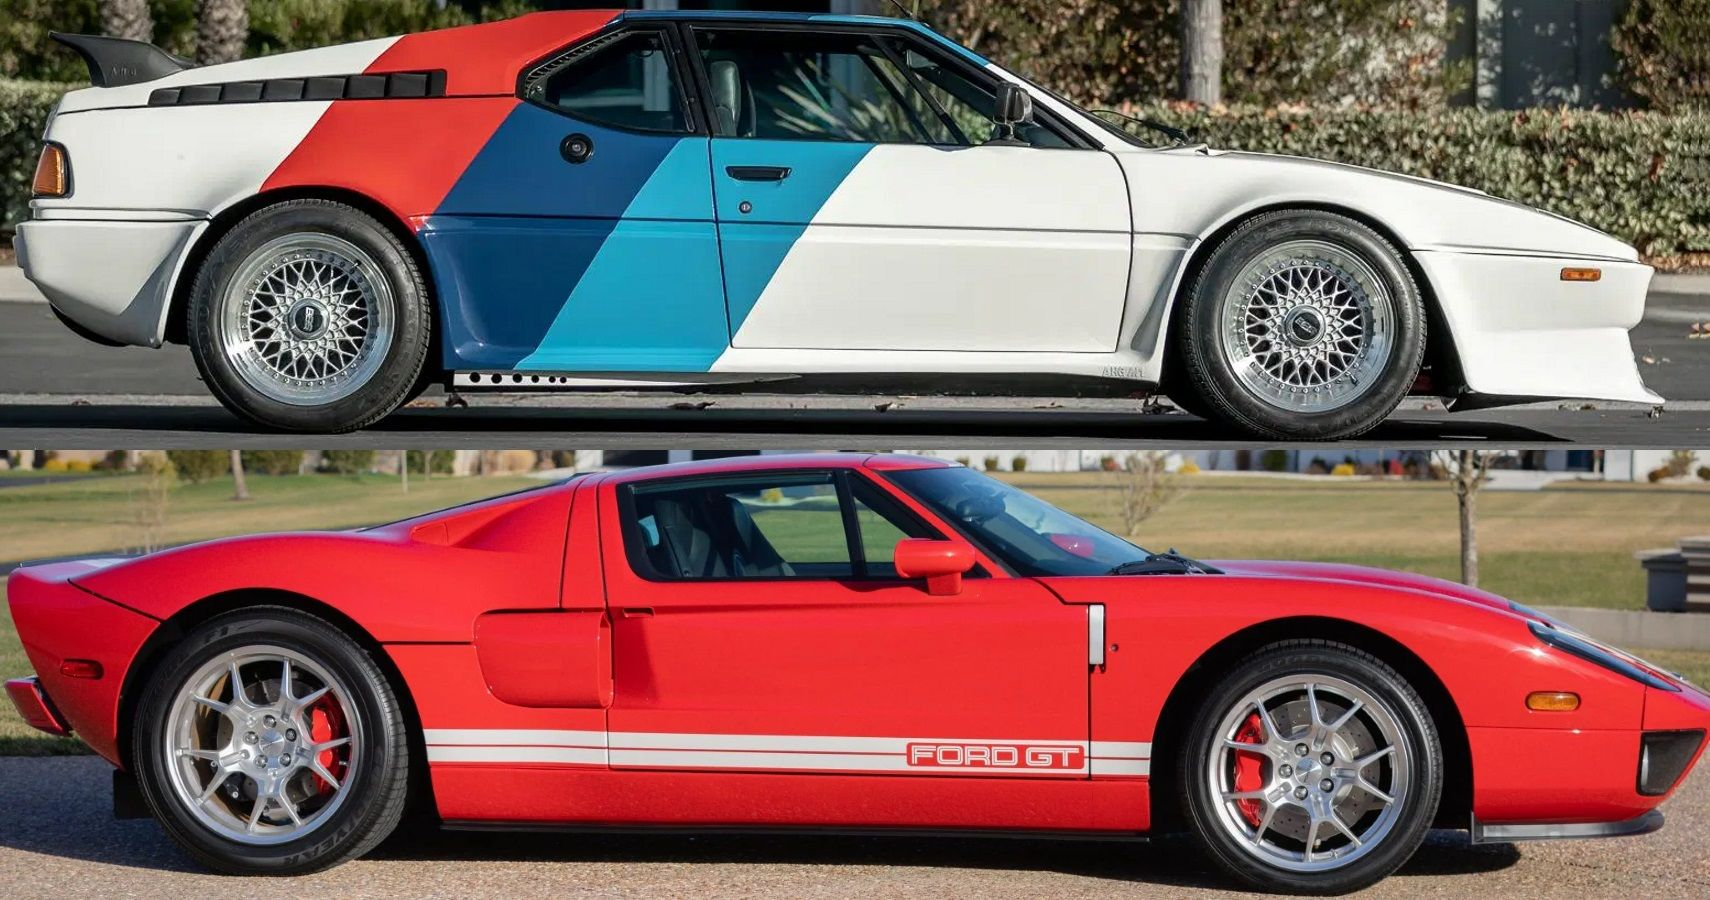 Extreme Auction Dilemma: 1980 BMW M1 Vs 2005 Ford GT